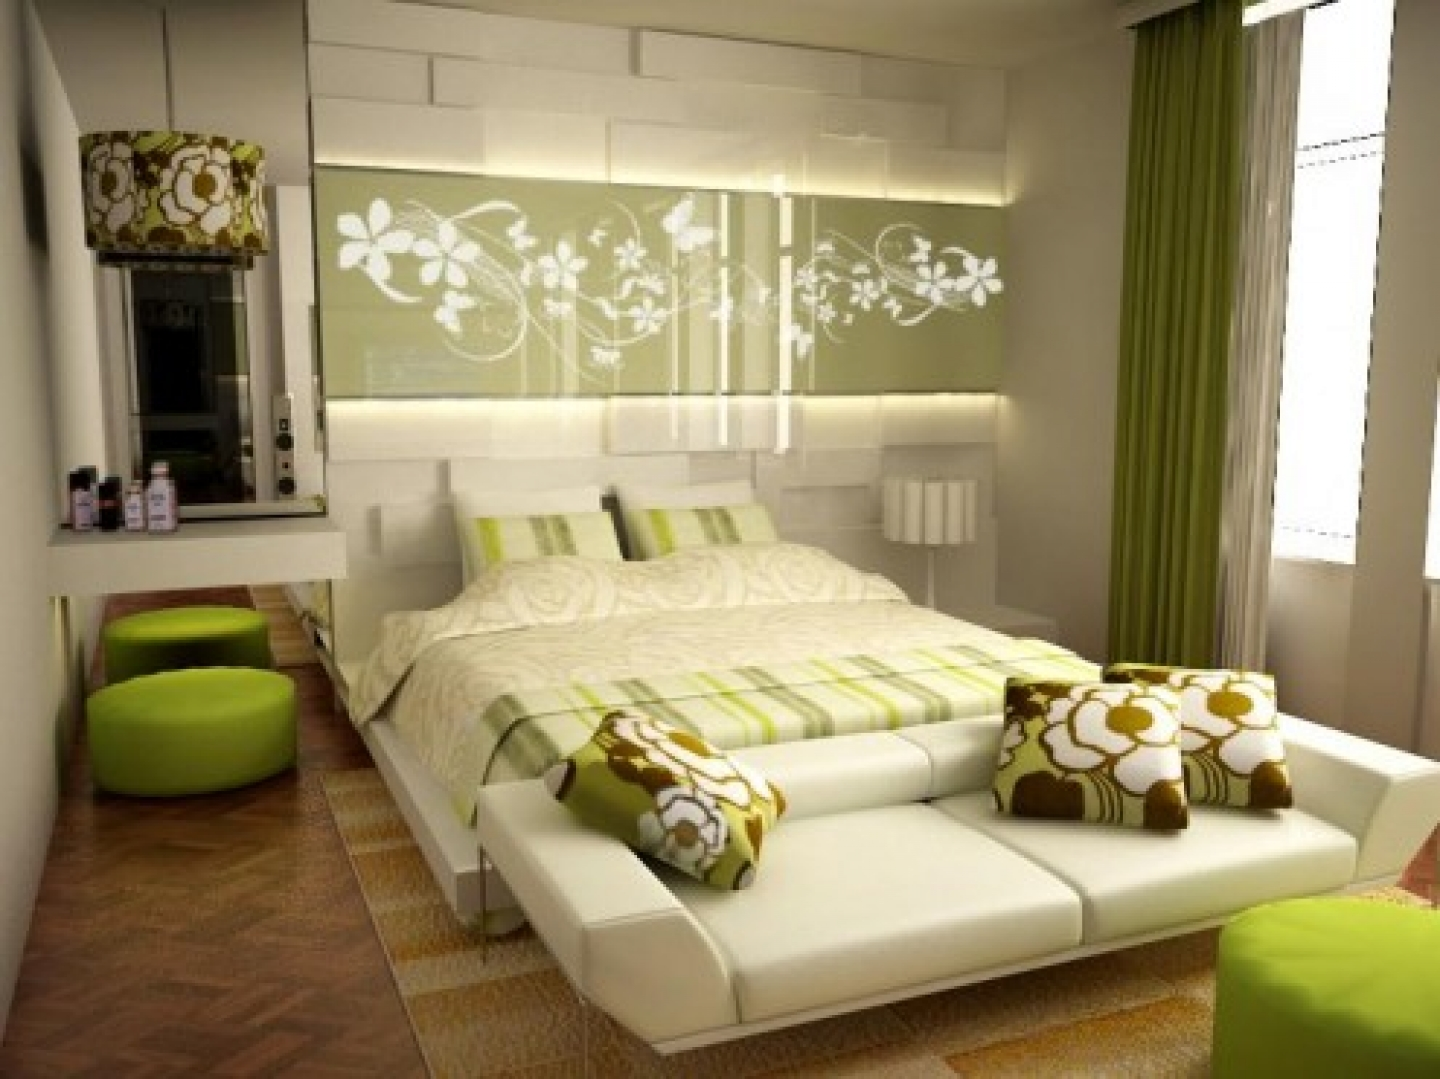 wallpaper bedroom wallpapers decor home decor home decorations houses 1440x1079